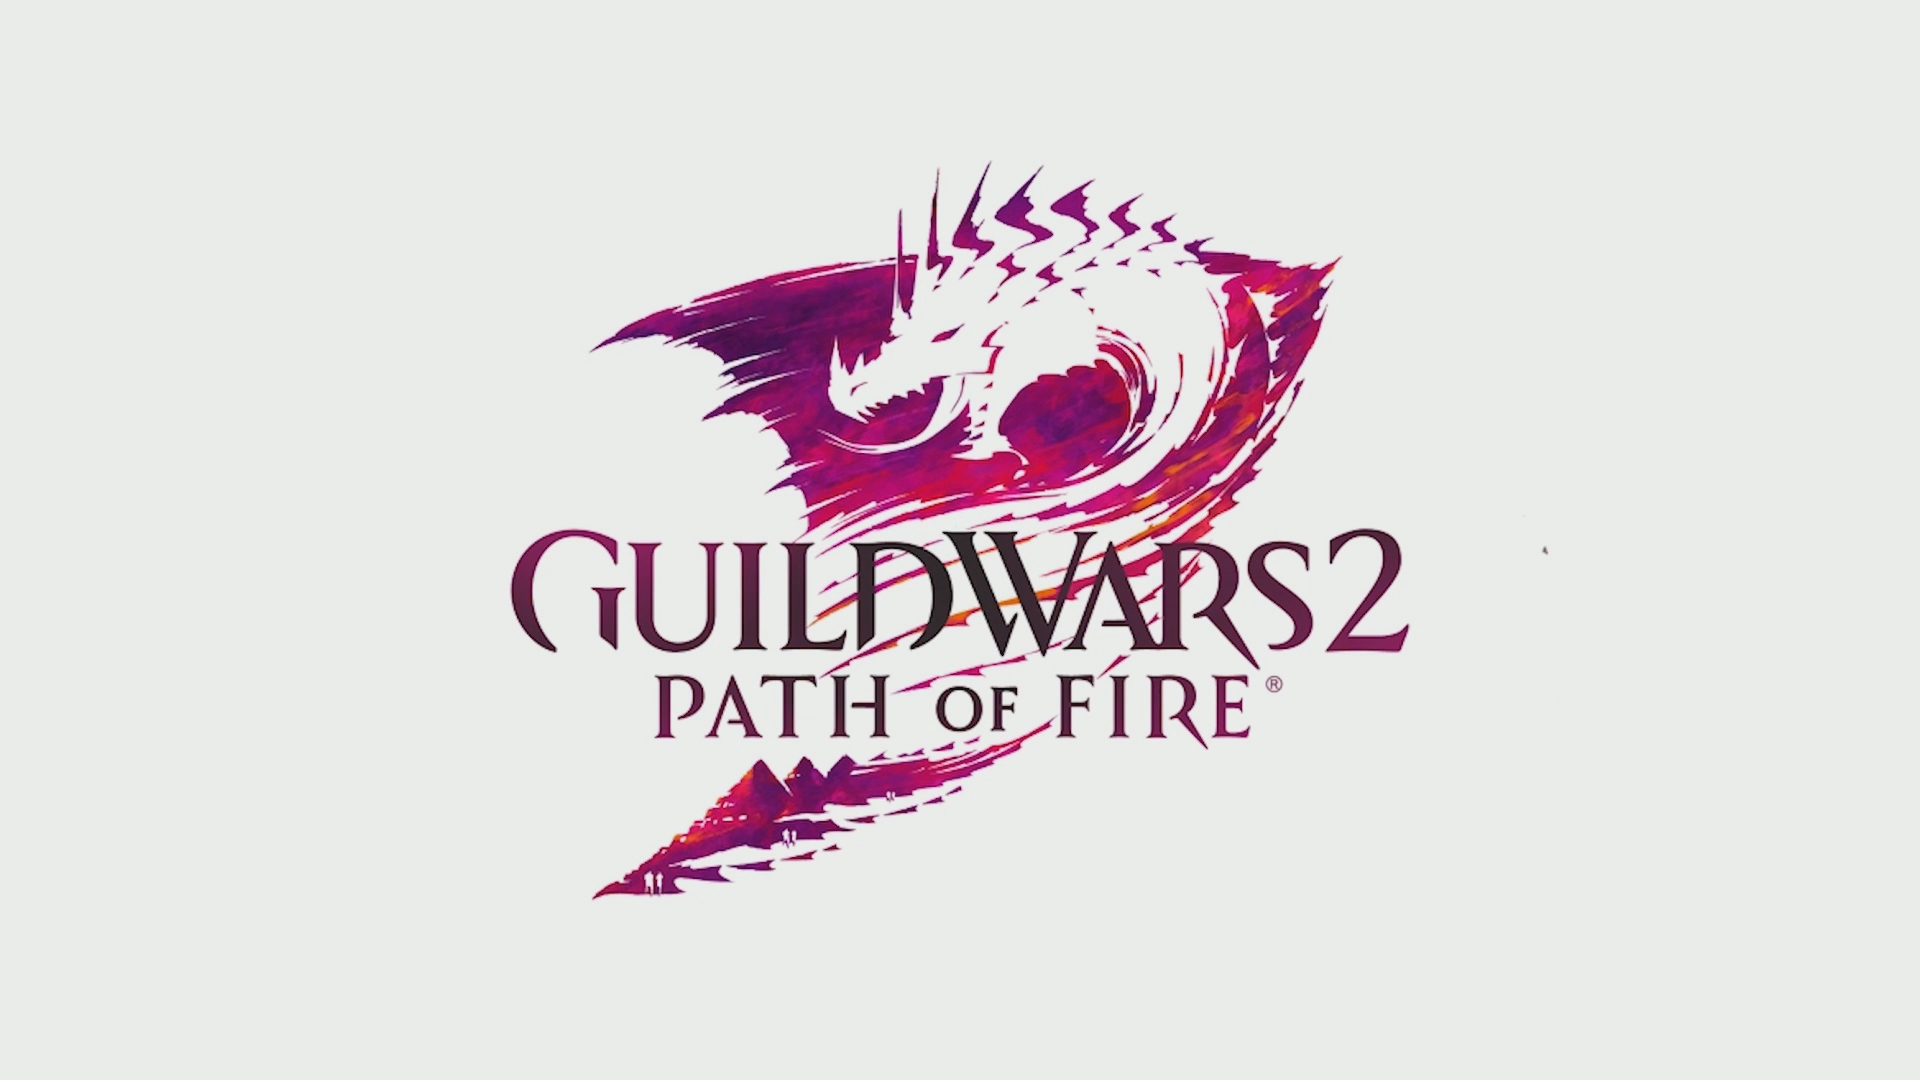 Guild Wars 2 Buy coupons and Guild Wars 2 Buy promo codes are at RebateCodes